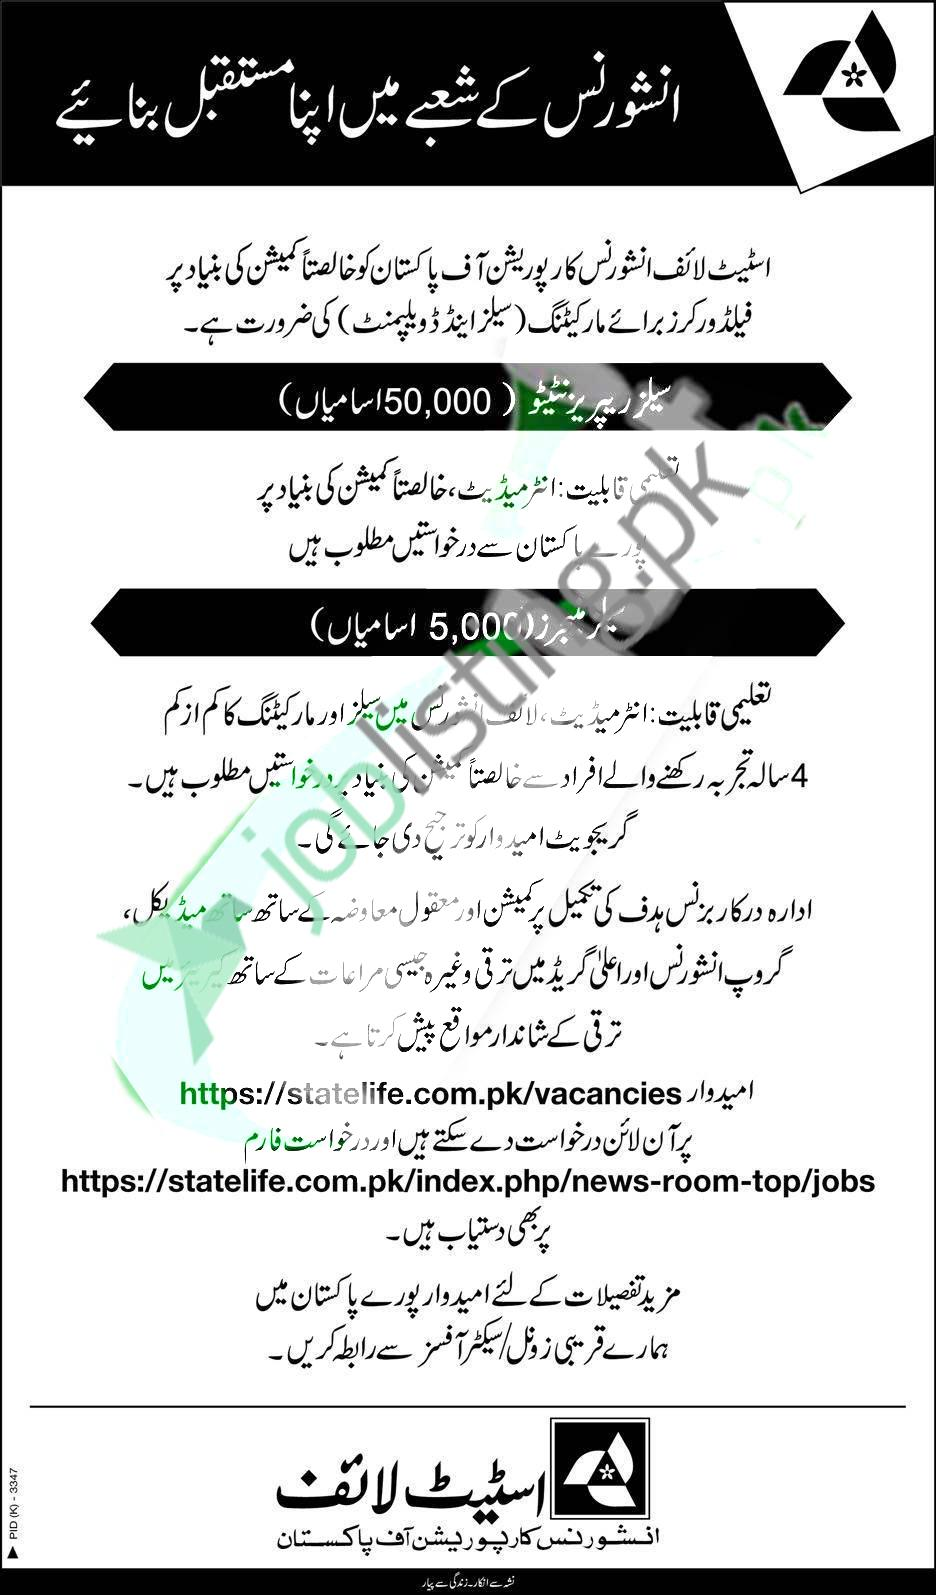 Sales Representatives / Manager Jobs 2021 in State Life Insurance Corporation of Pakistan